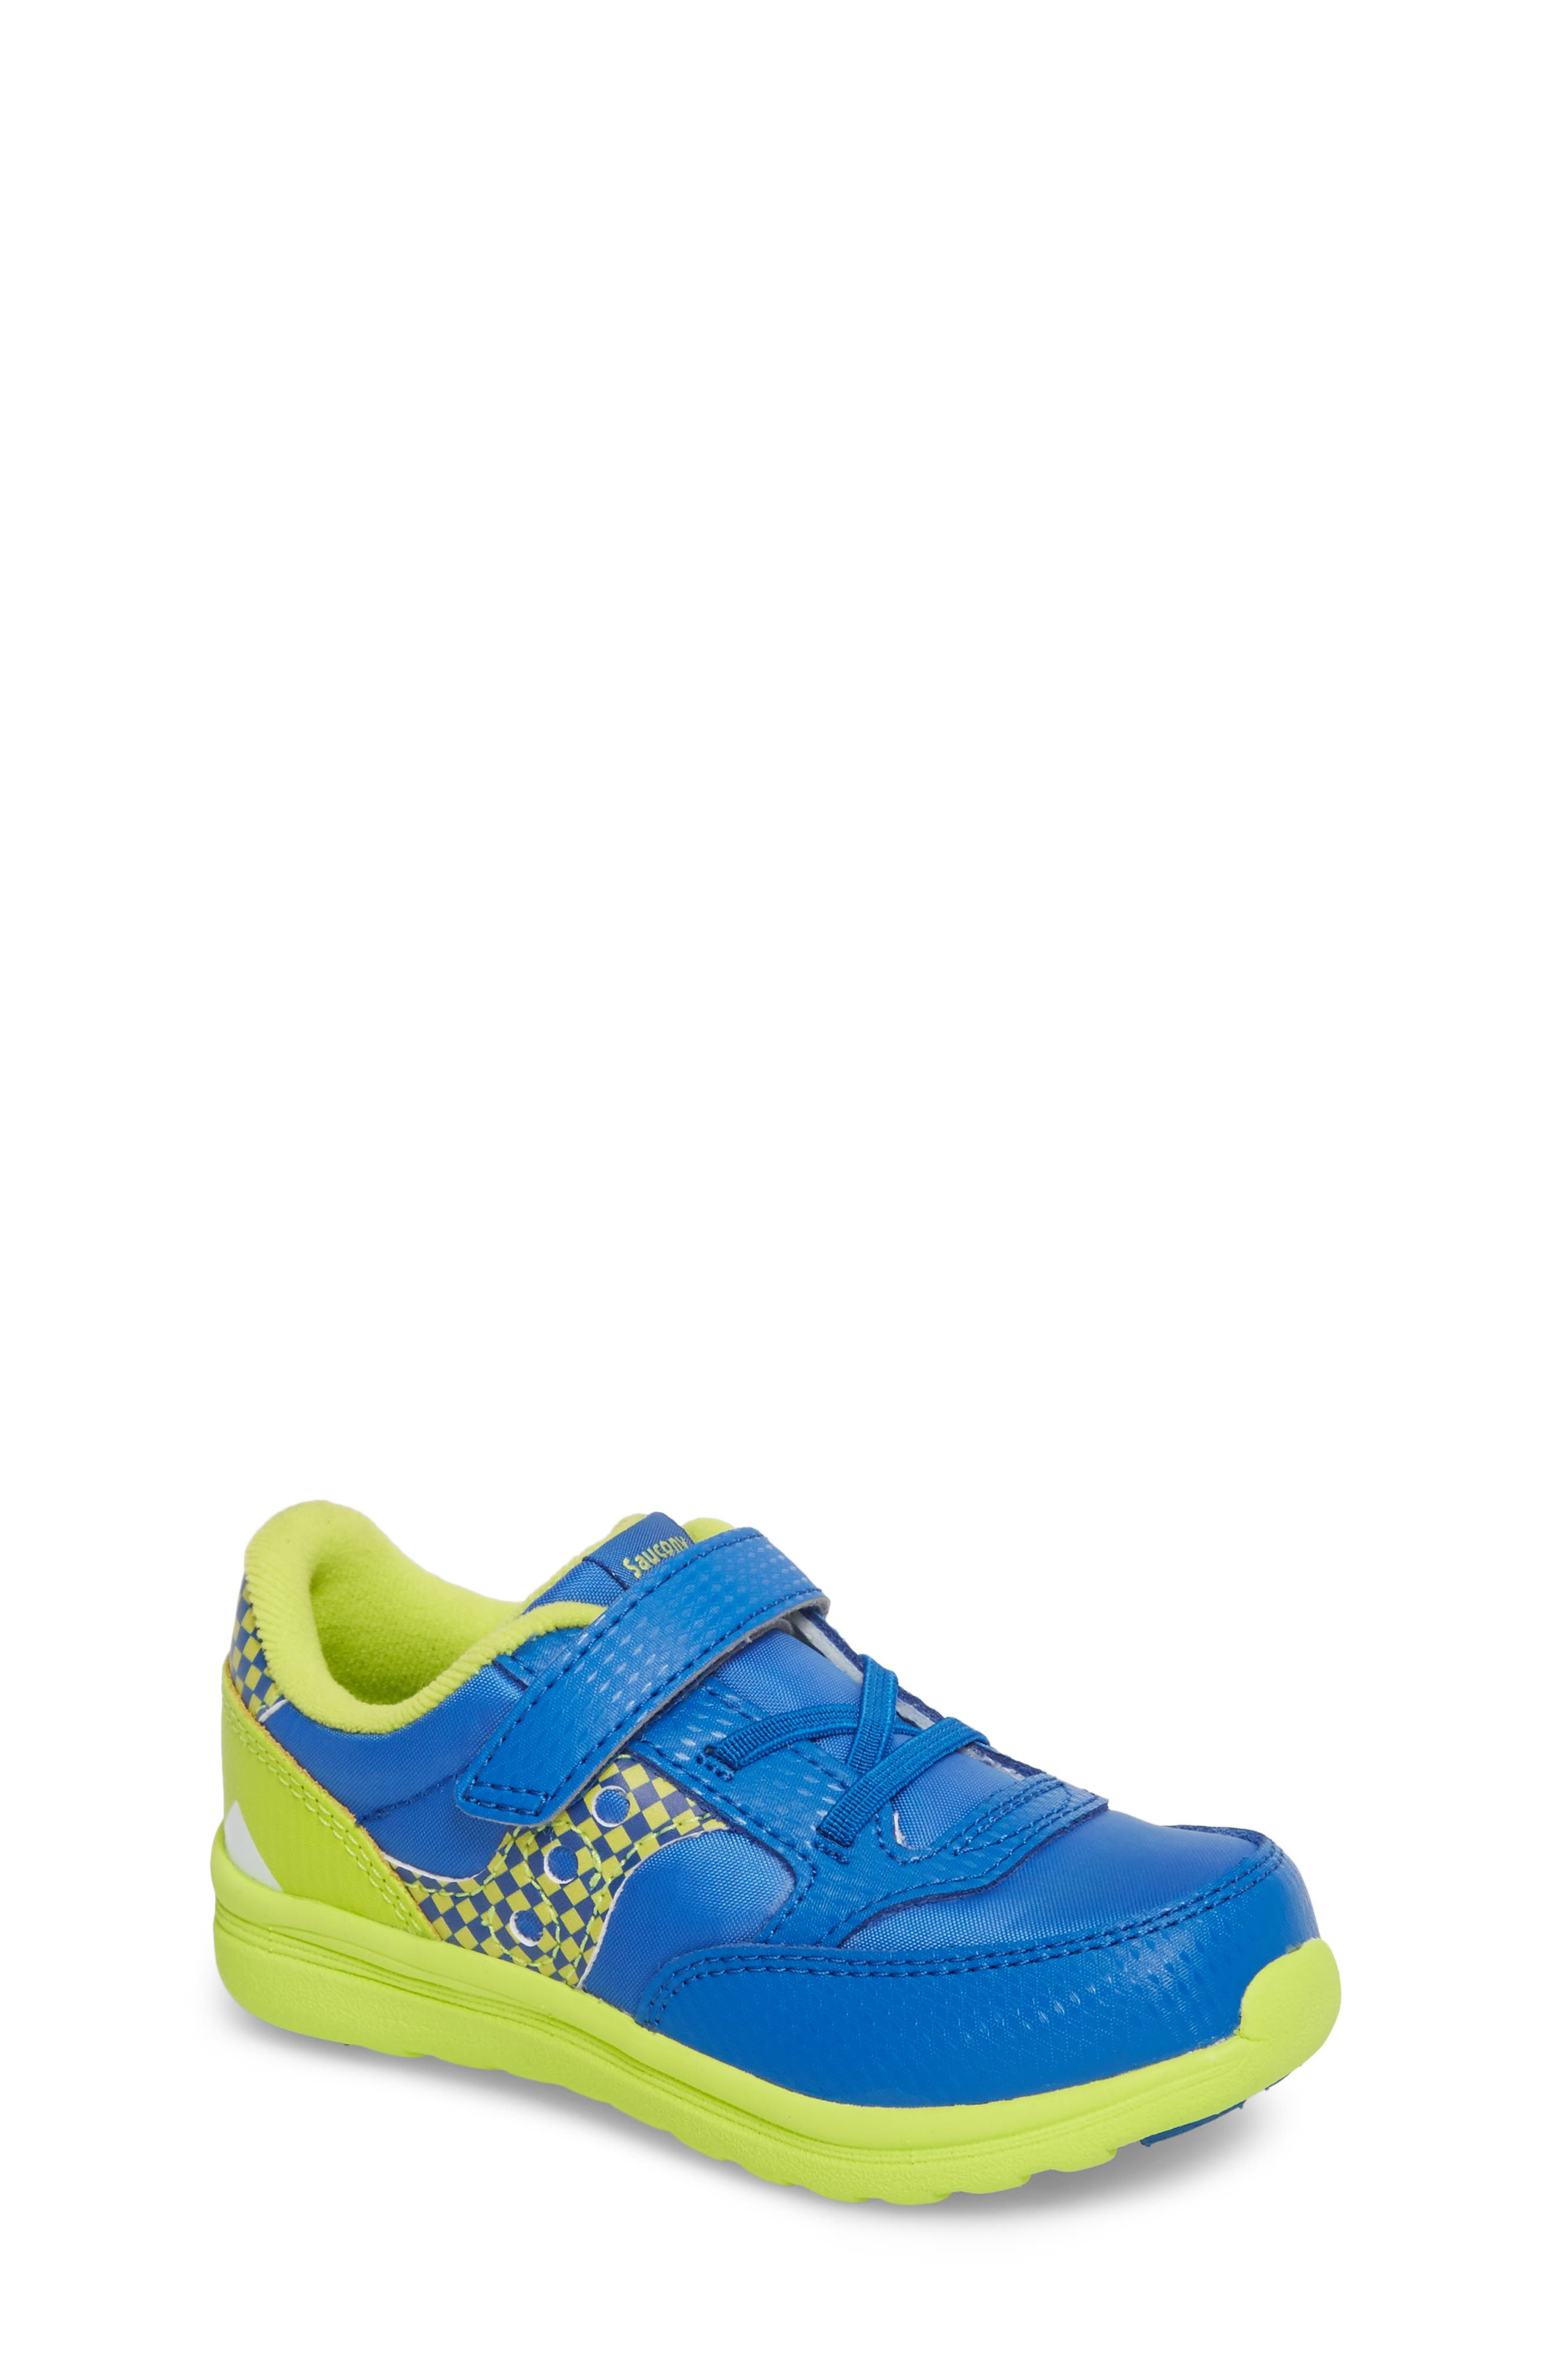 Jazz Lite Sneaker,                         Main,                         color, 400